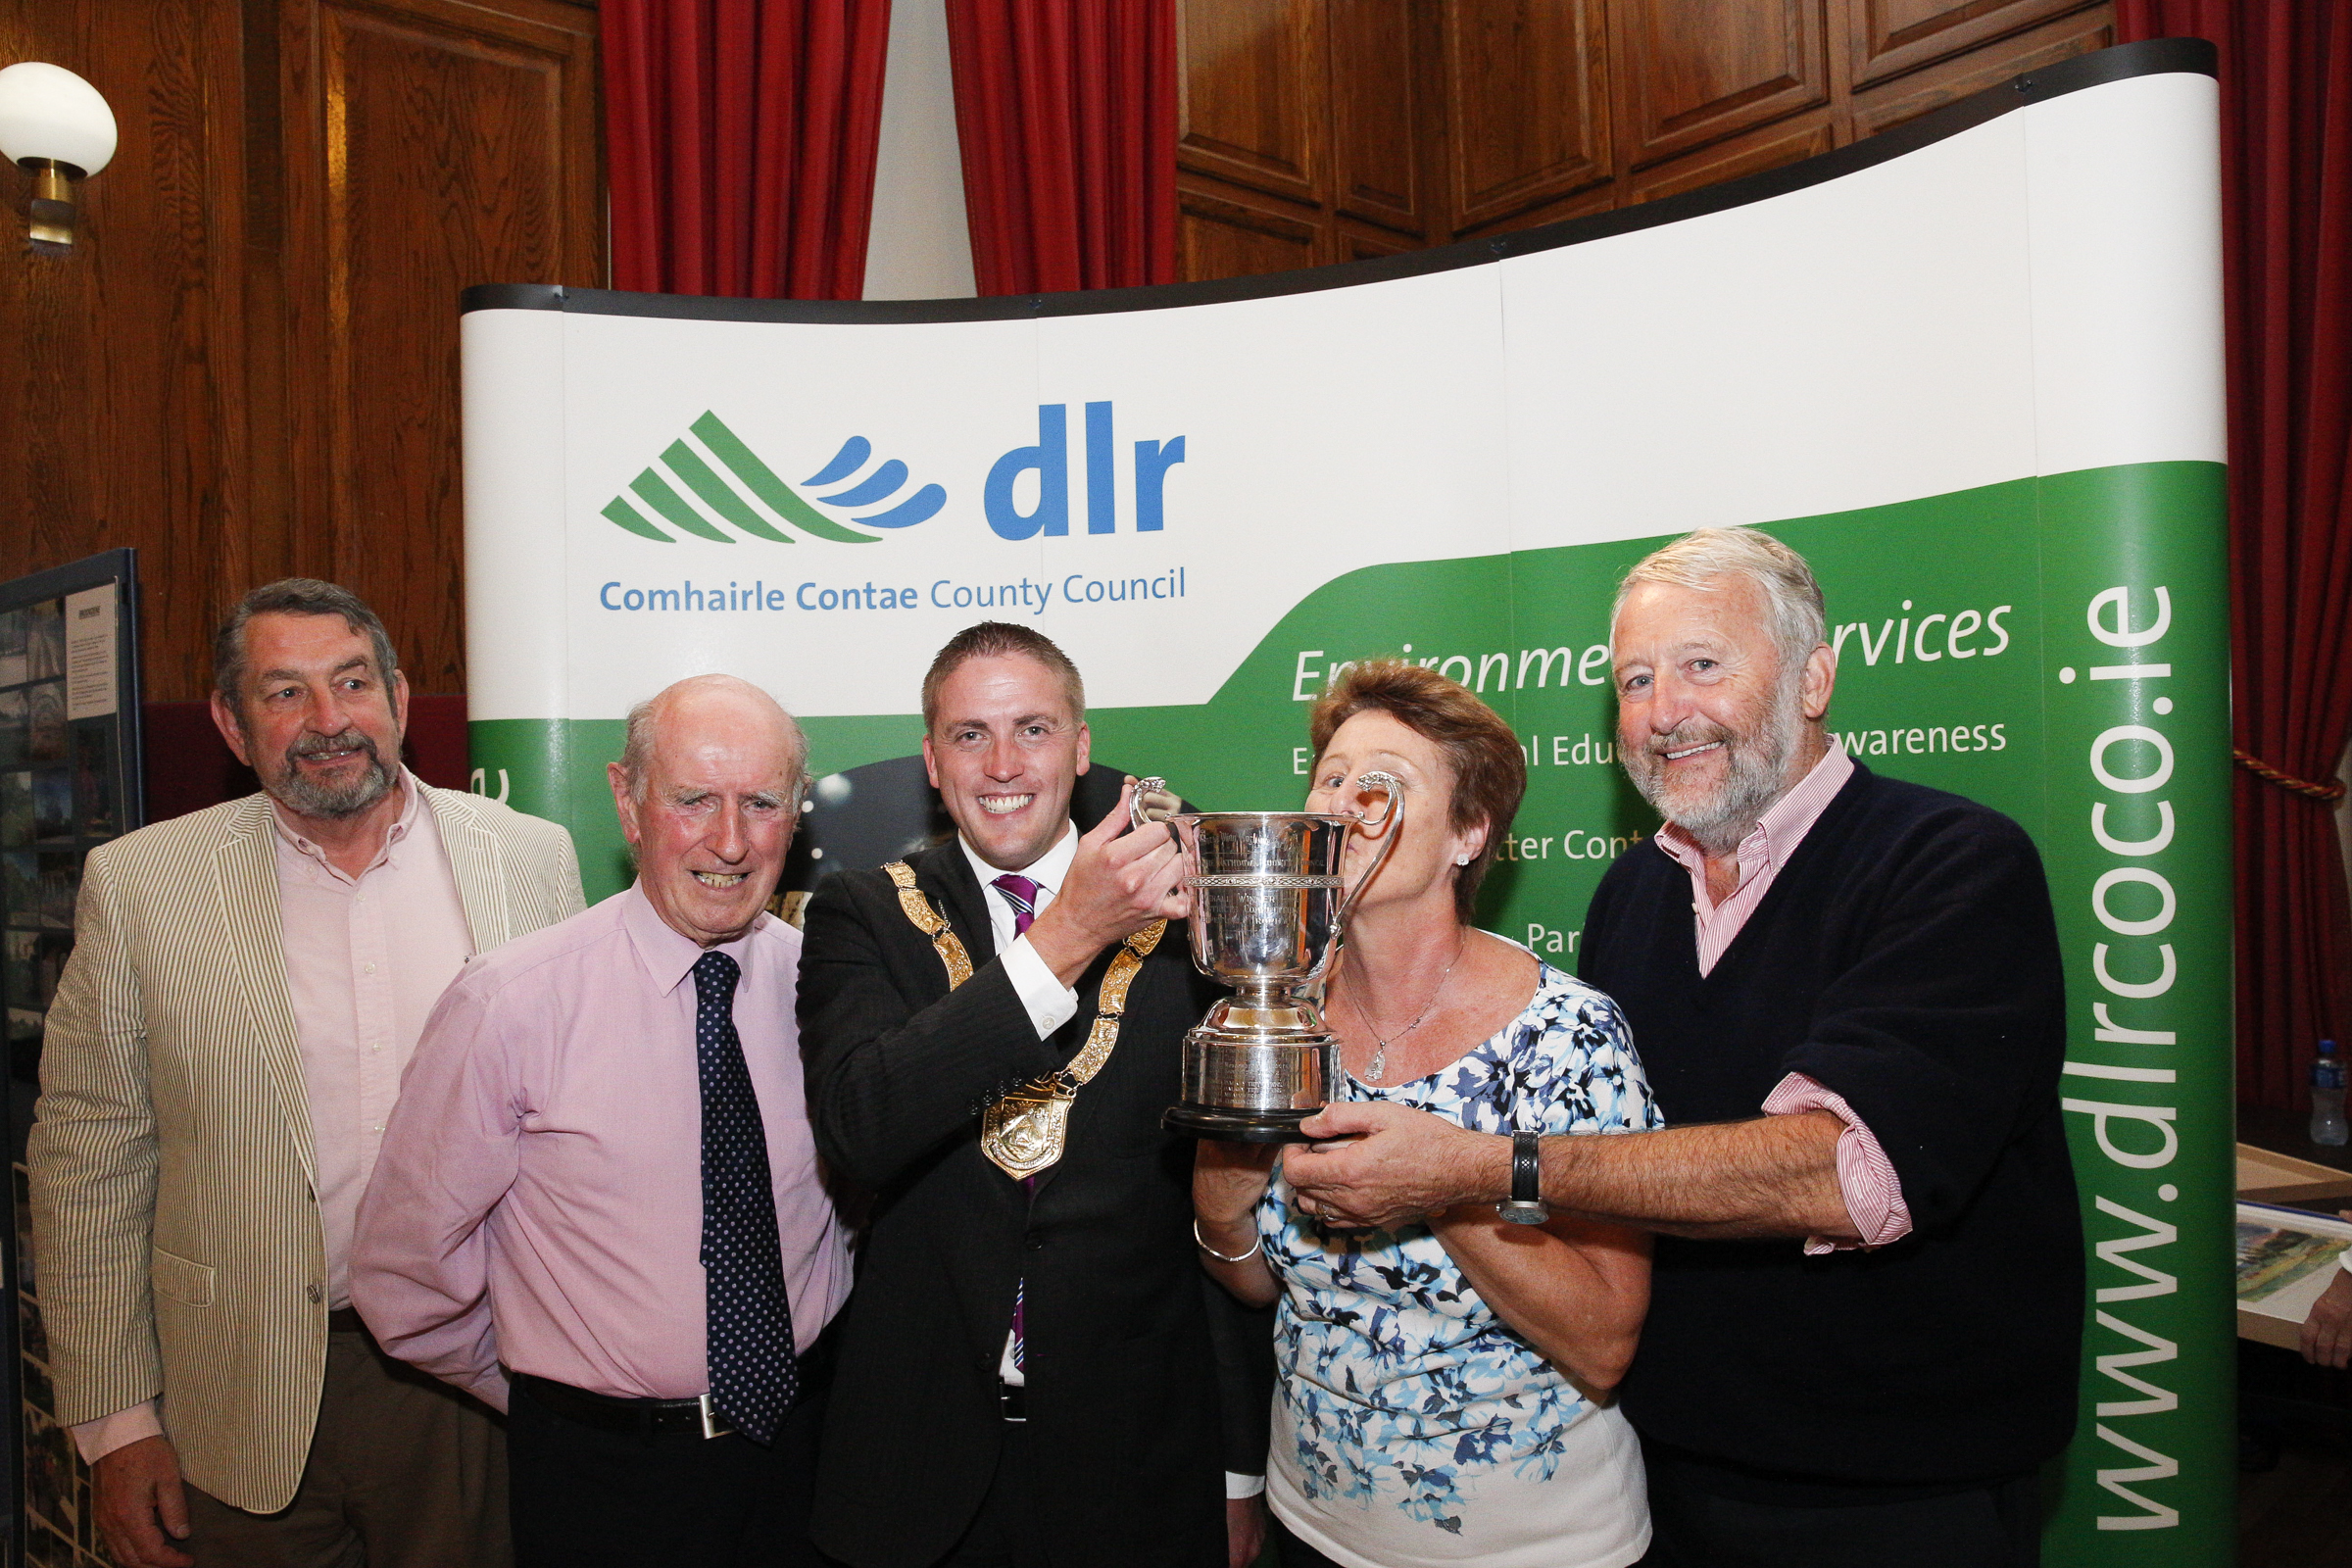 28th September 2016 - Dun Laoghaire - Pictured at County Hall, Dún Laoghaire, where the winners were announced in the Dún Laoghaire-Rathdown County Council Tidy Districts Awards were, left to right,  © Photo by Peter Cavanagh - Must Credit No Reproduction Fee